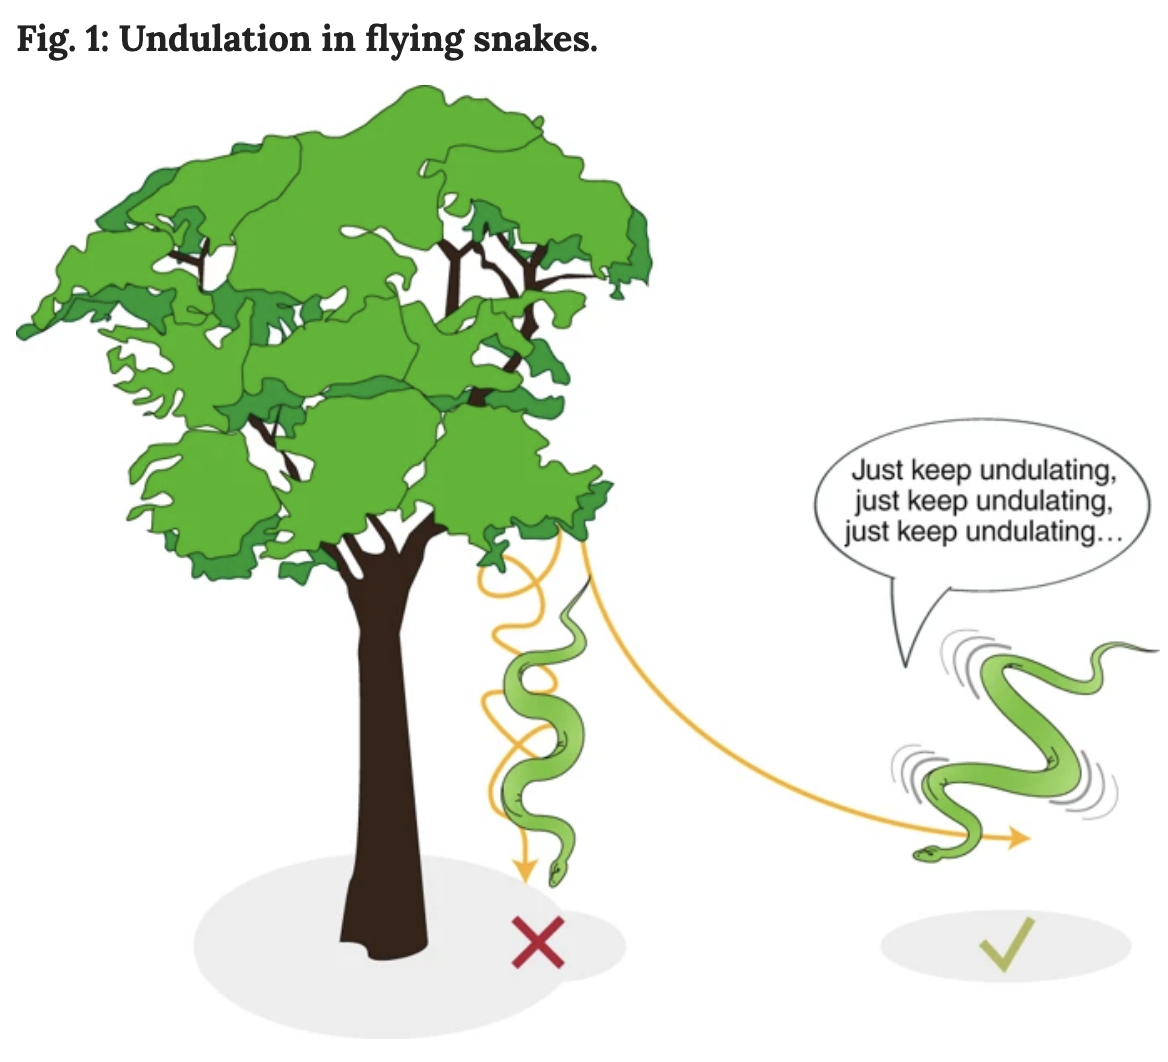 The Bizarre 'Flight' of Tree Snakes May Have Just Been Explained by Physics